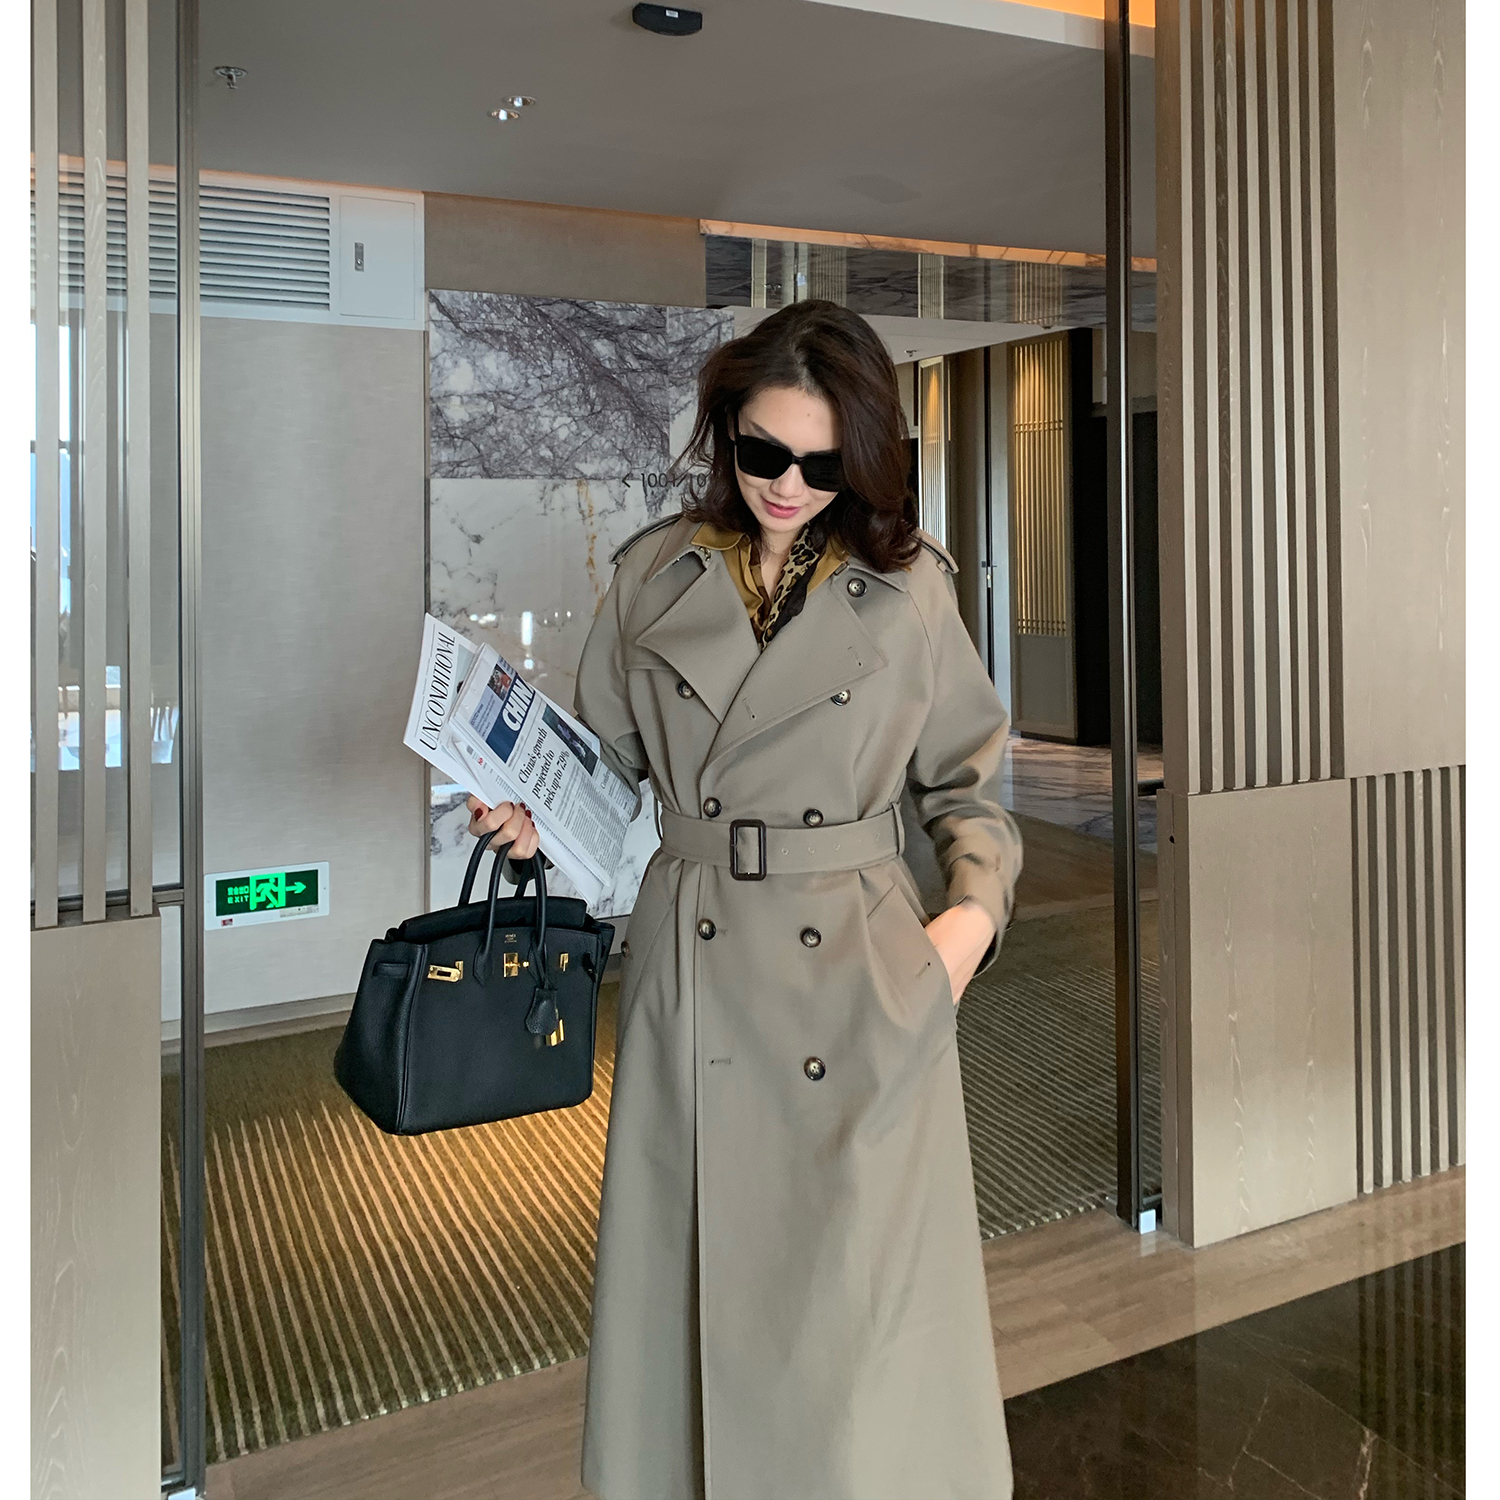 MS ancient classic OLD CE high temperature lining qualitative double-row buckle long version after the fork windcoat coat female spring and autumn